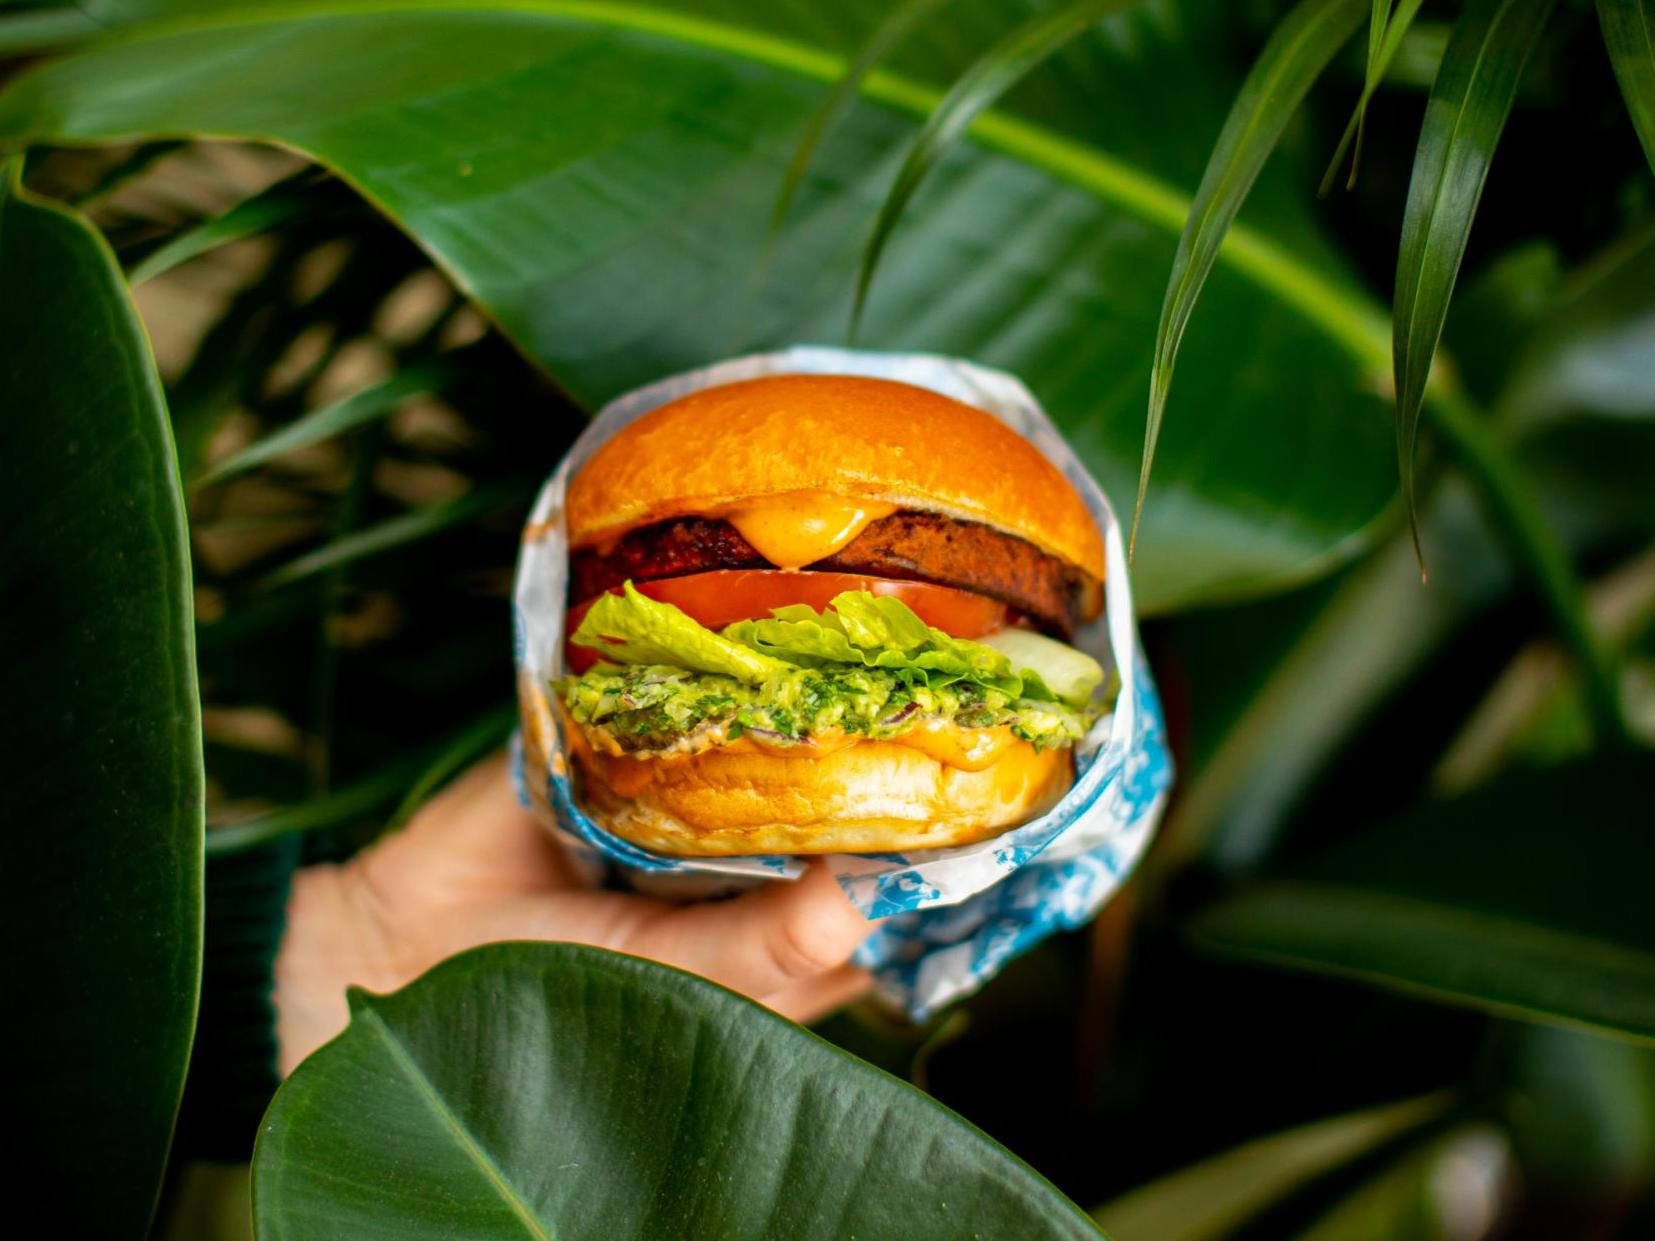 Vegan burgers outsell normal burgers at Leon as plant-based food surges in popularity